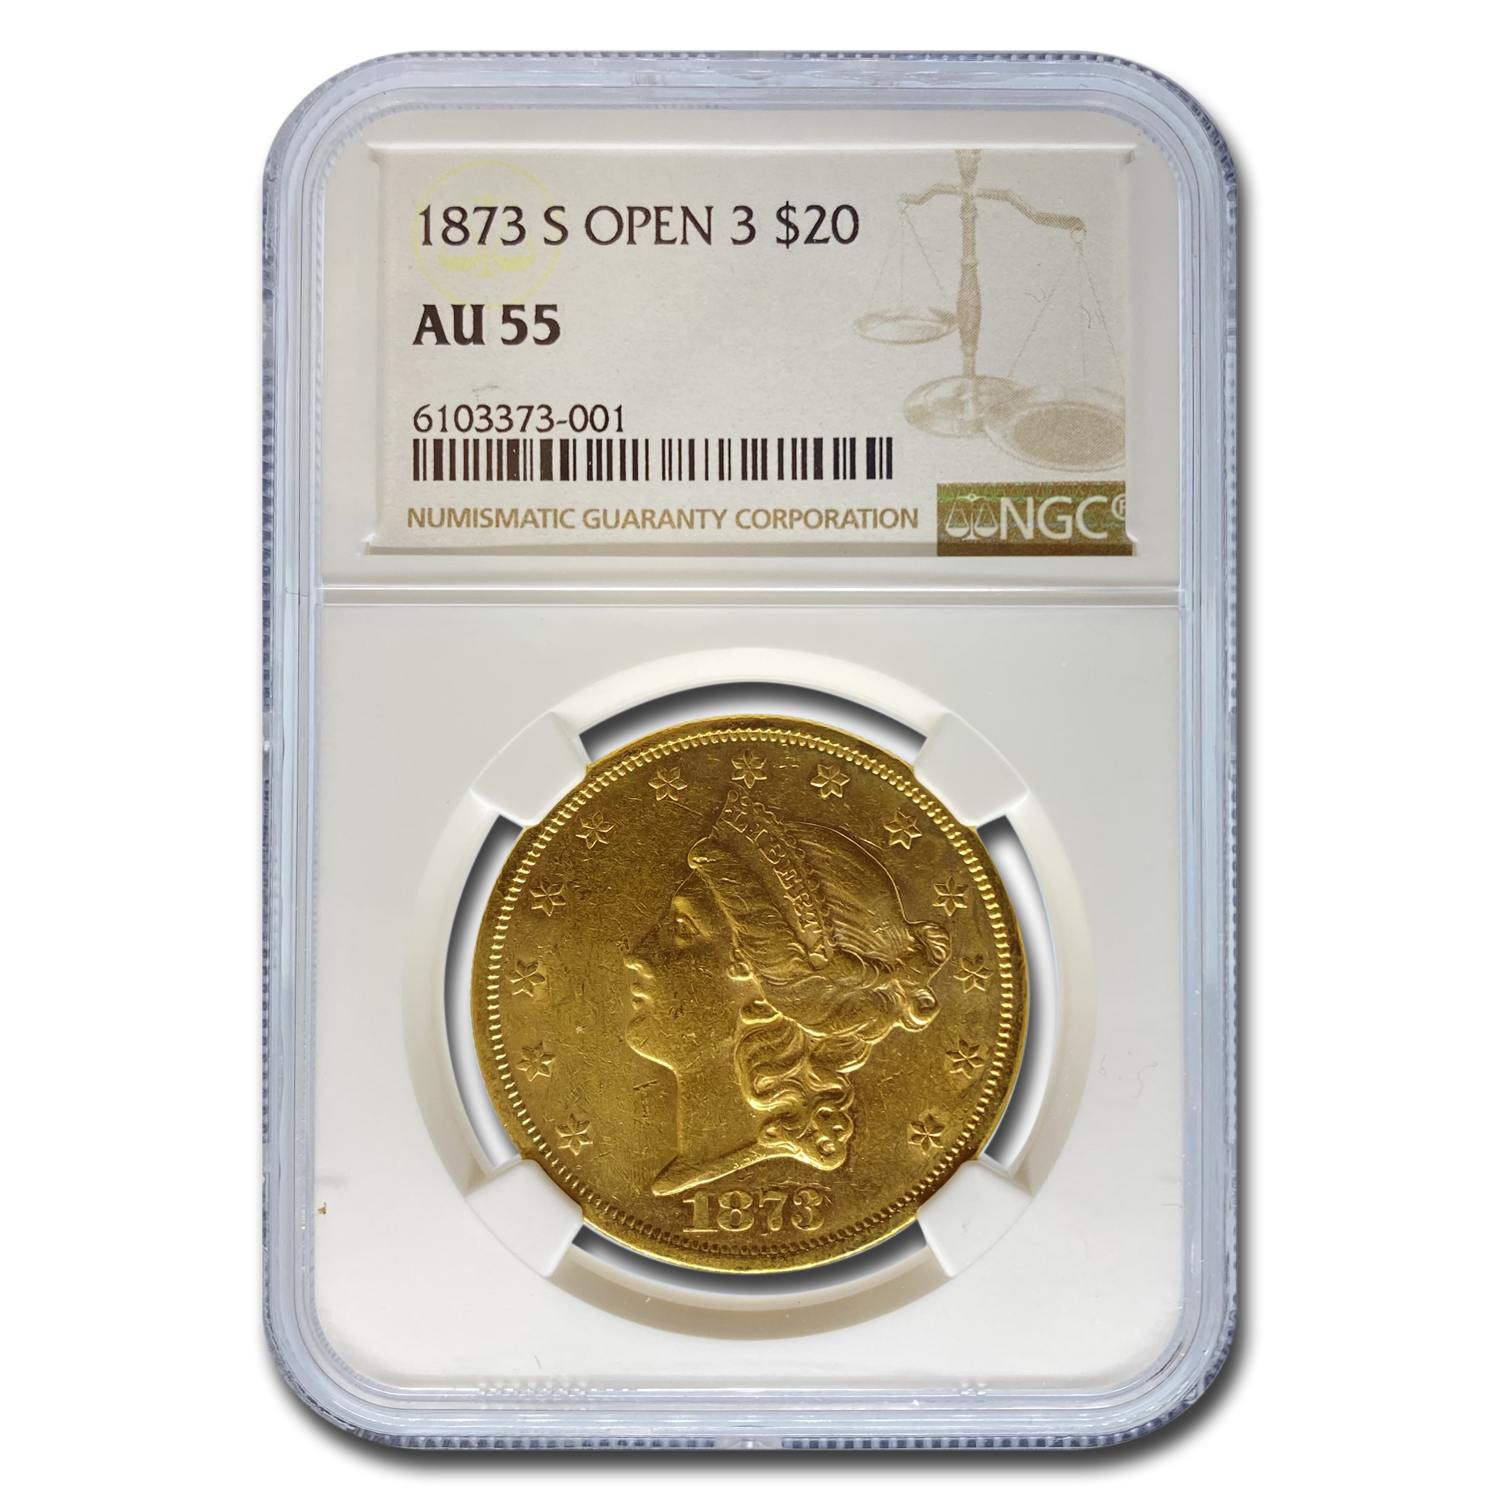 1873-S $20 Liberty Gold Double Eagle Open 3 AU-55 NGC